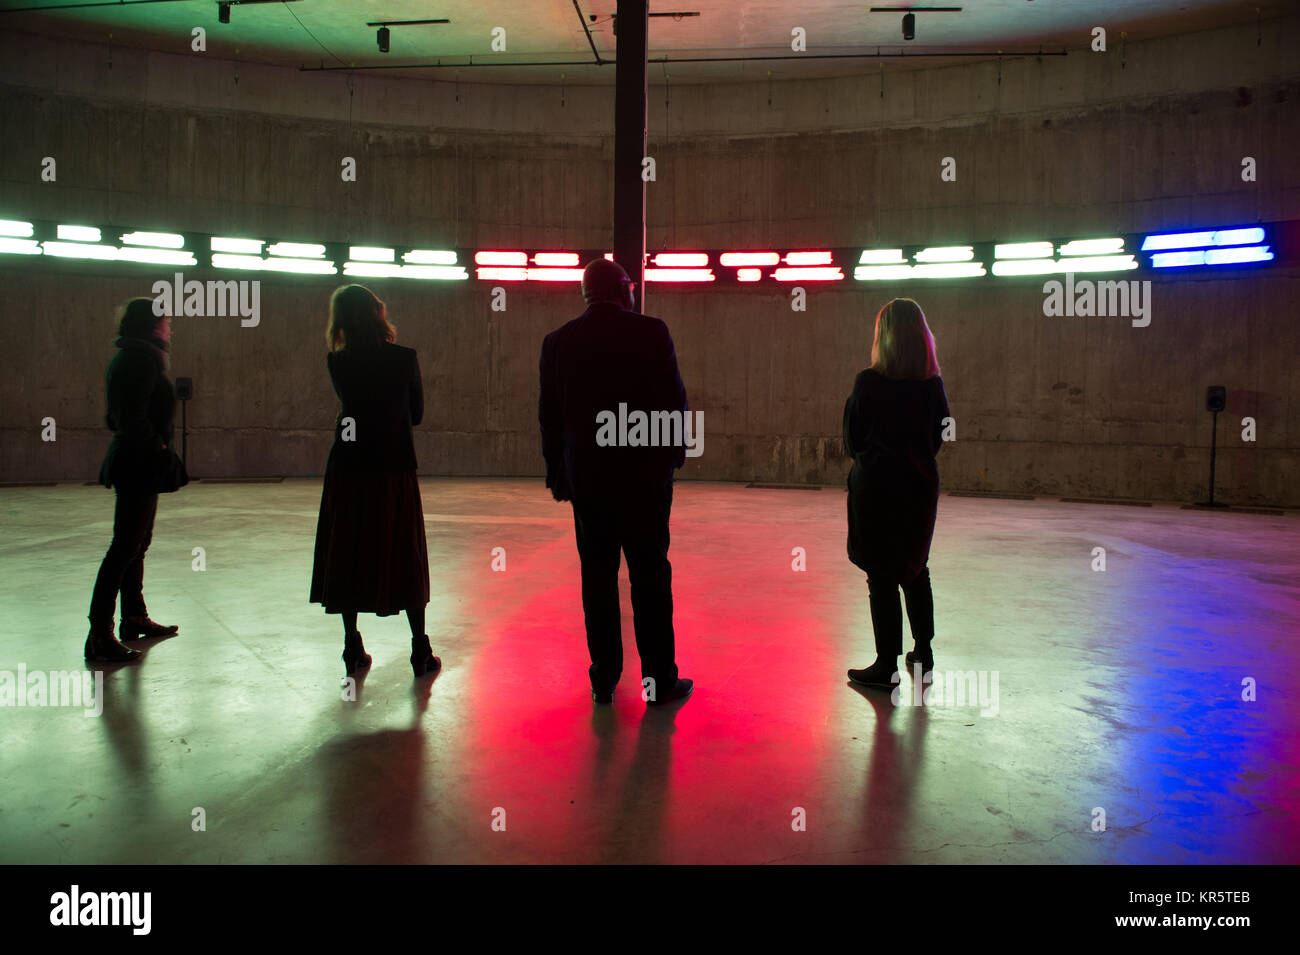 Tate Modern, London, UK. 18th Dec, 2017. The Way Earthly Things Are Going 2017, an immersive and multi-channel installation - Stock Image